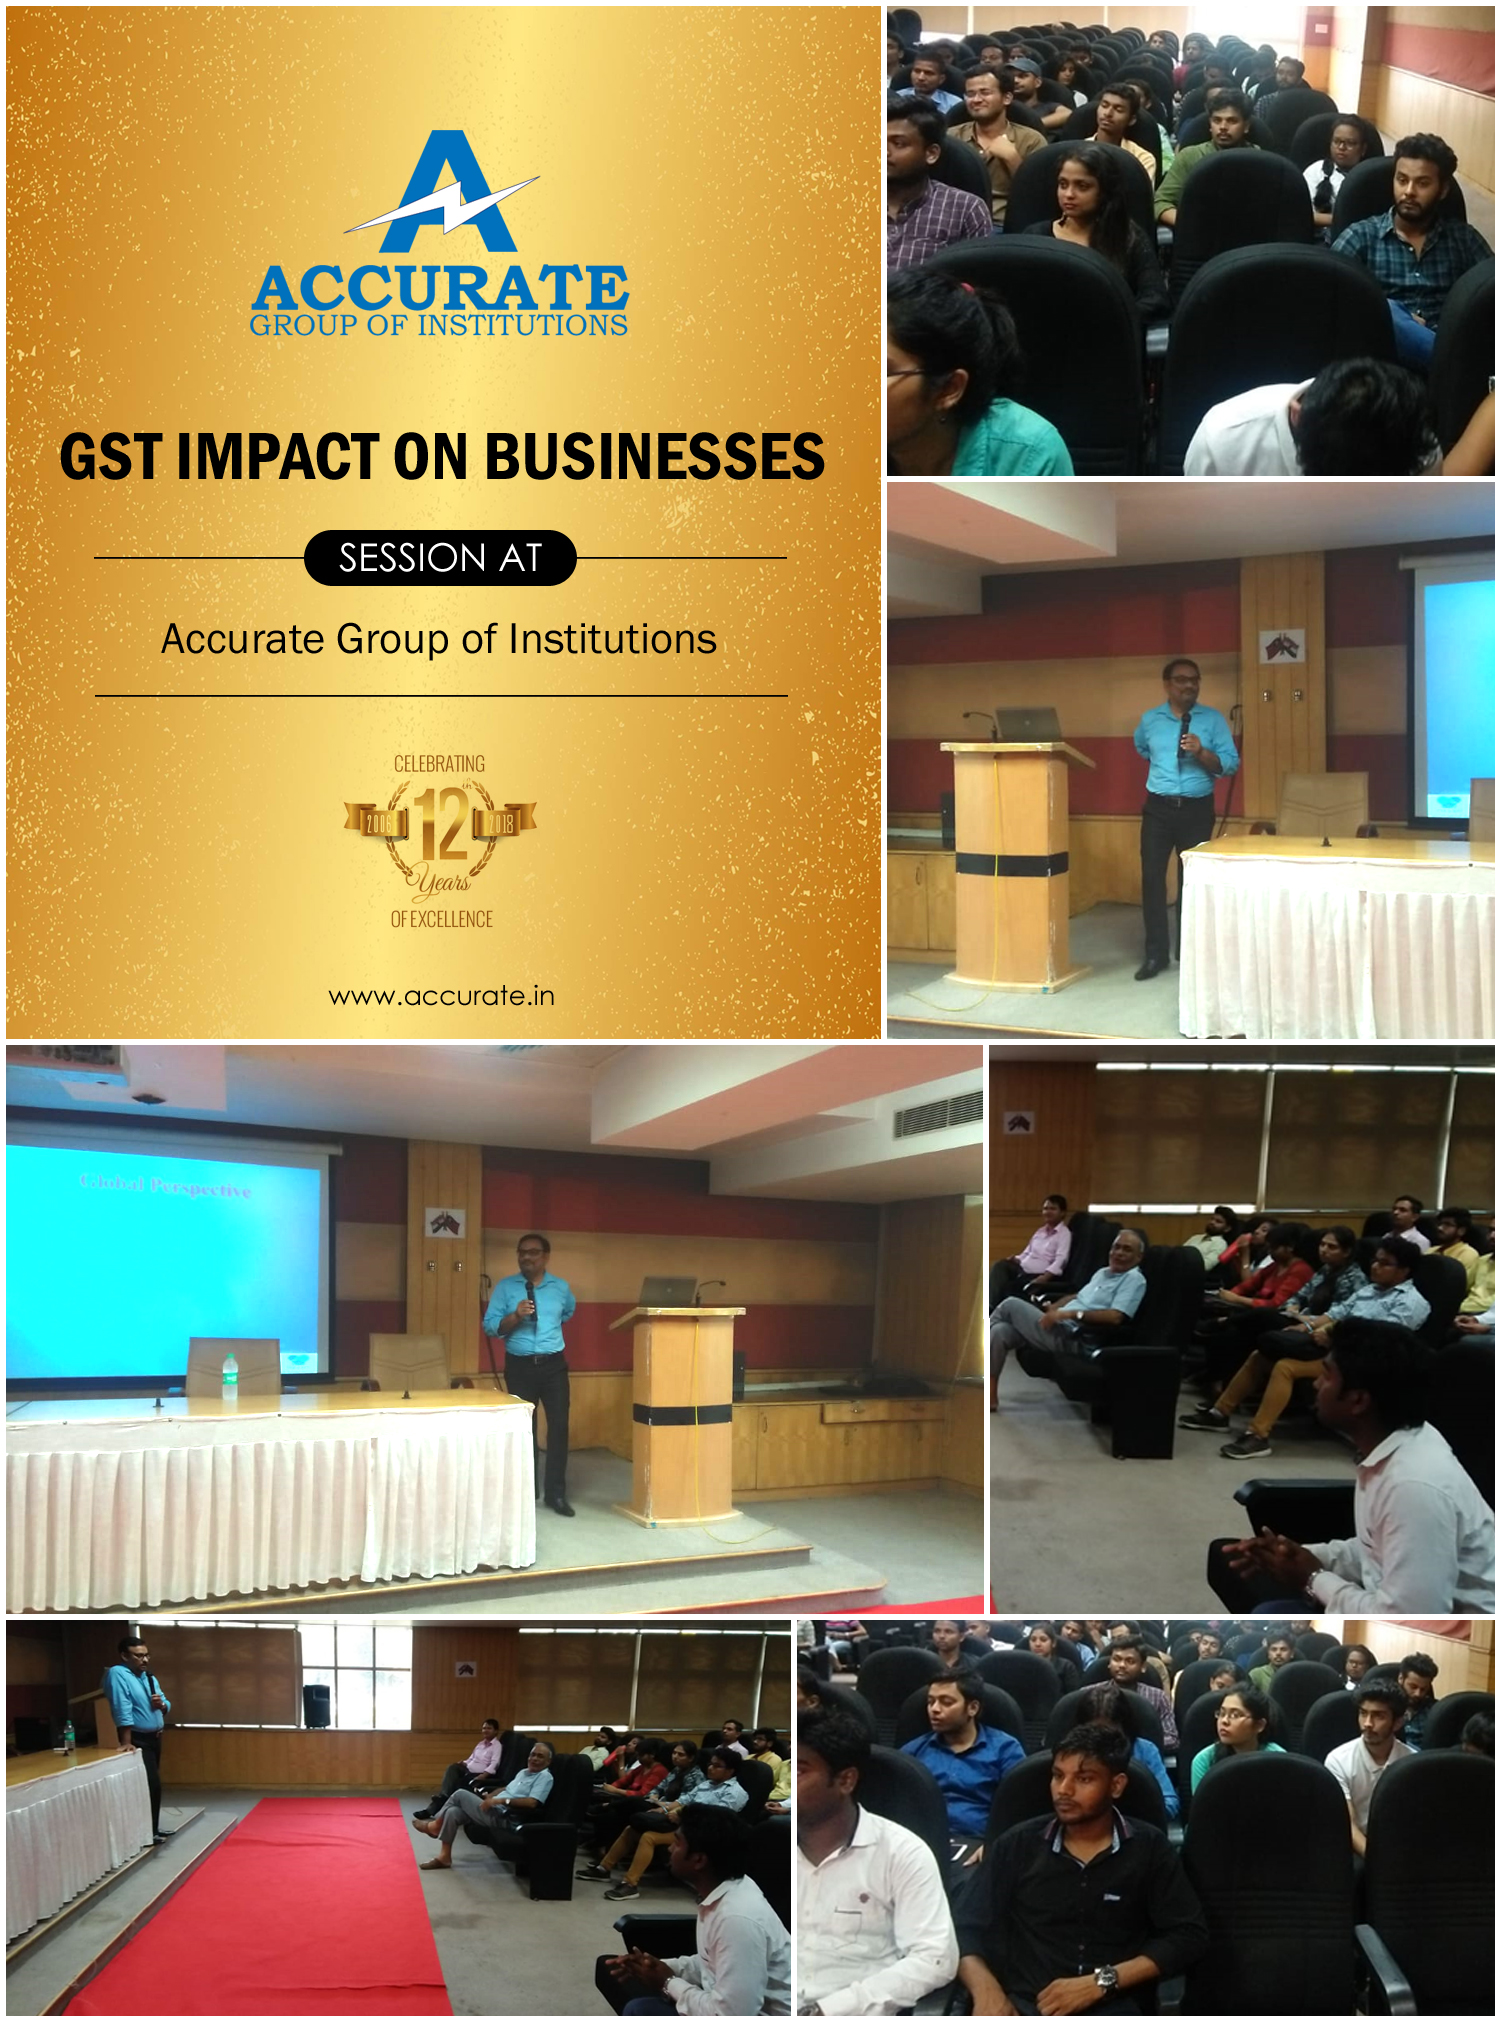 GST Impact on Businesses